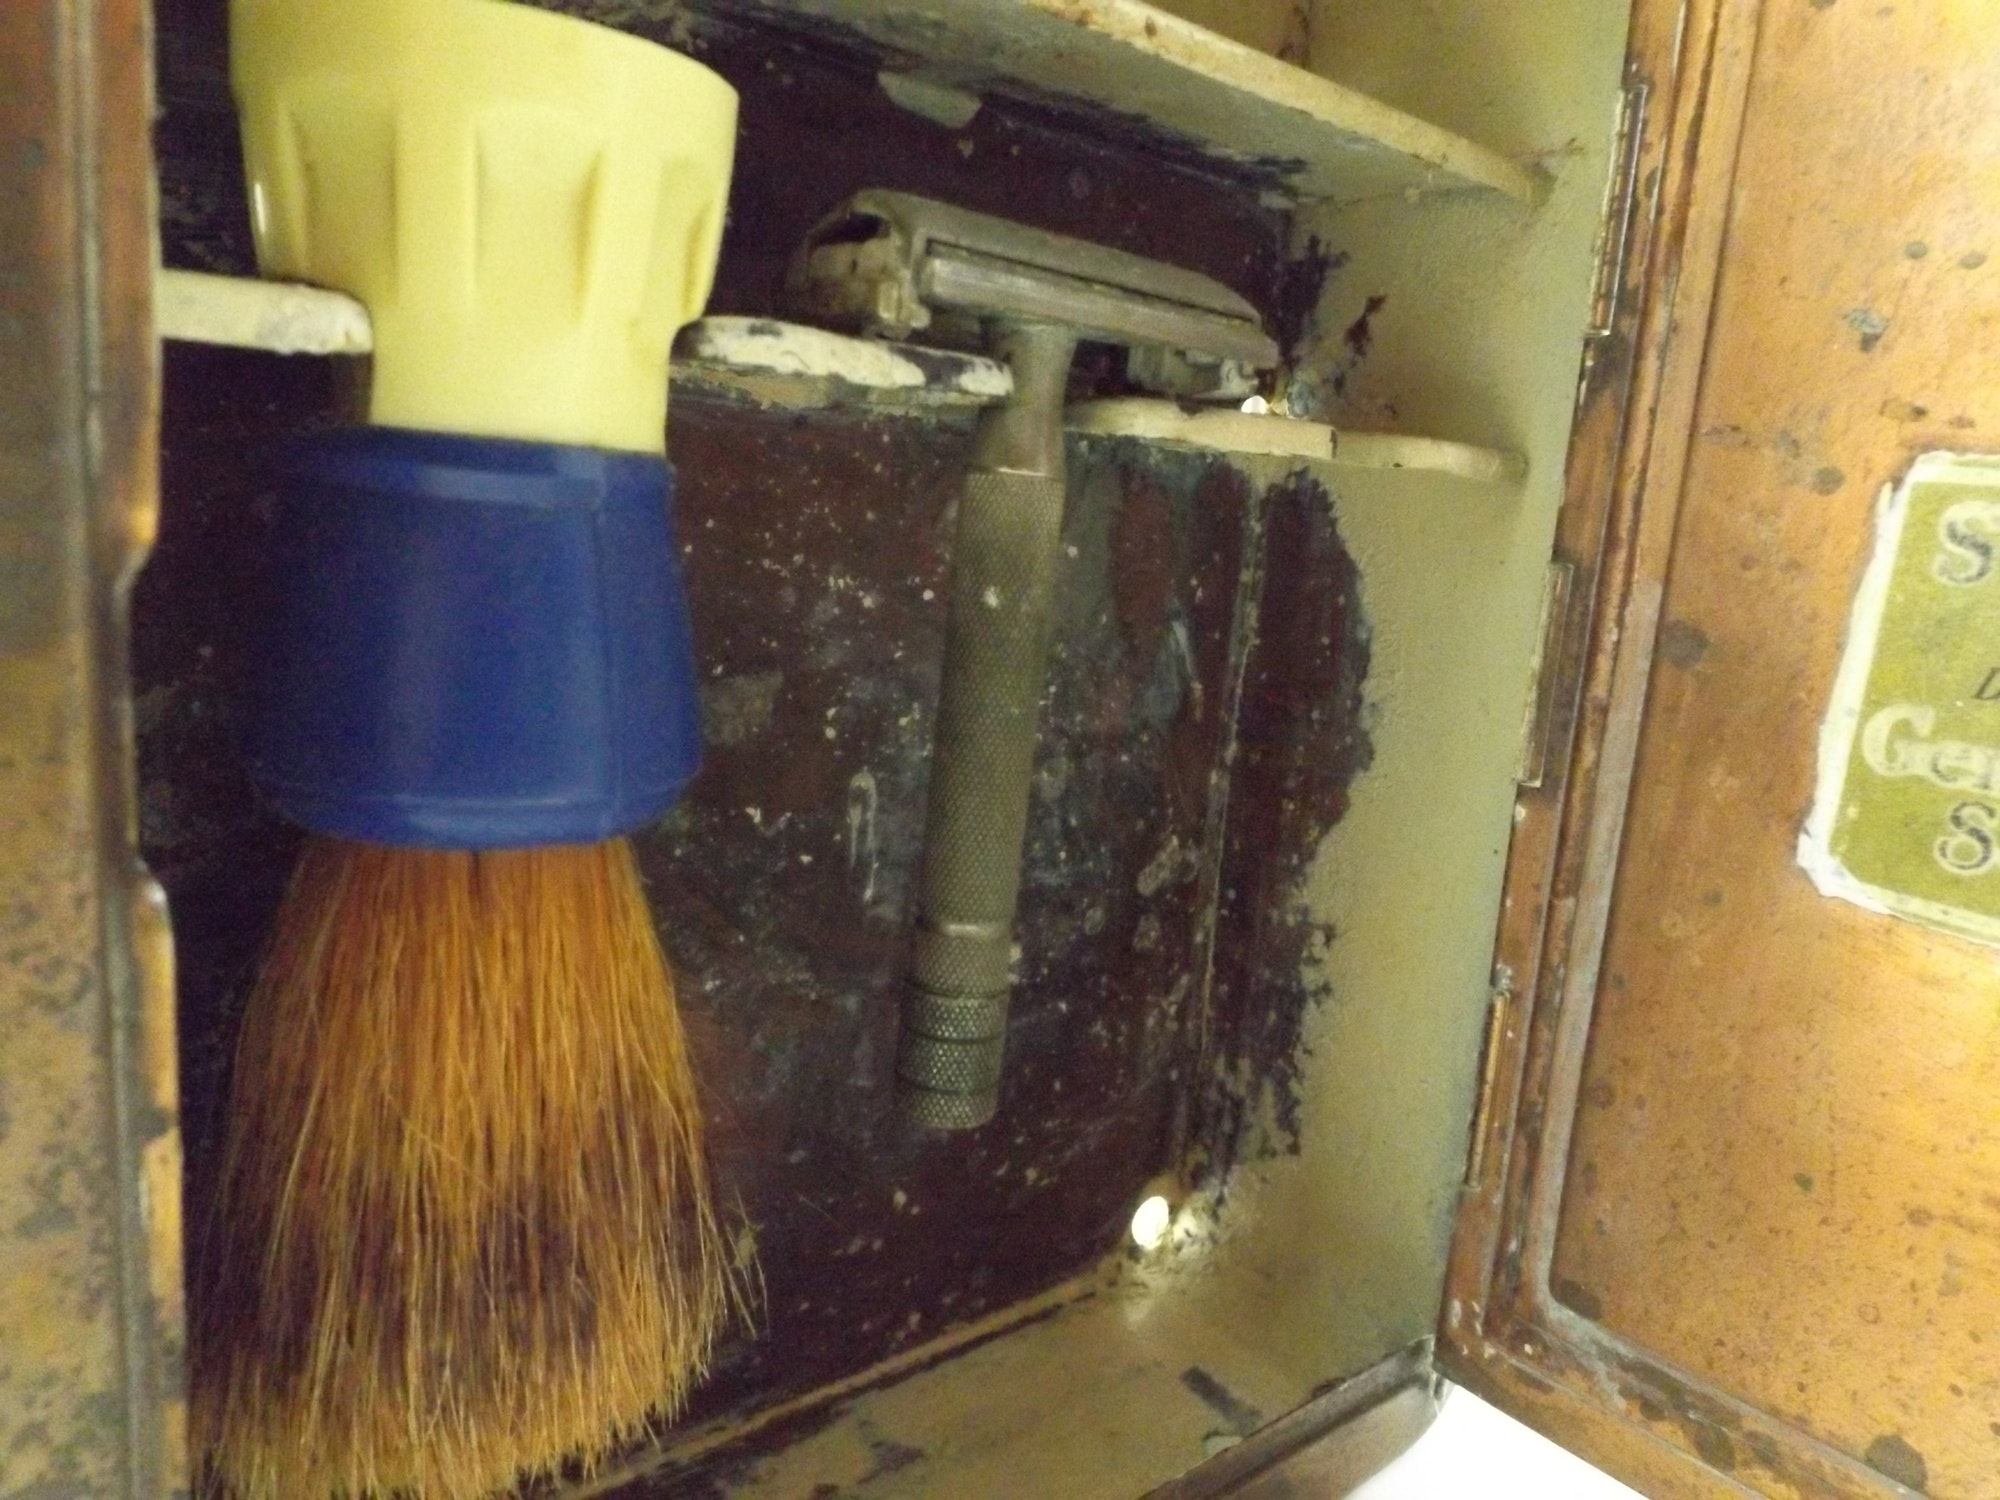 addyston guys Location for quality wood burning services visit wood burning stove guys in addyston, oh and our team of experts will support you and offer solutions to all your needs.